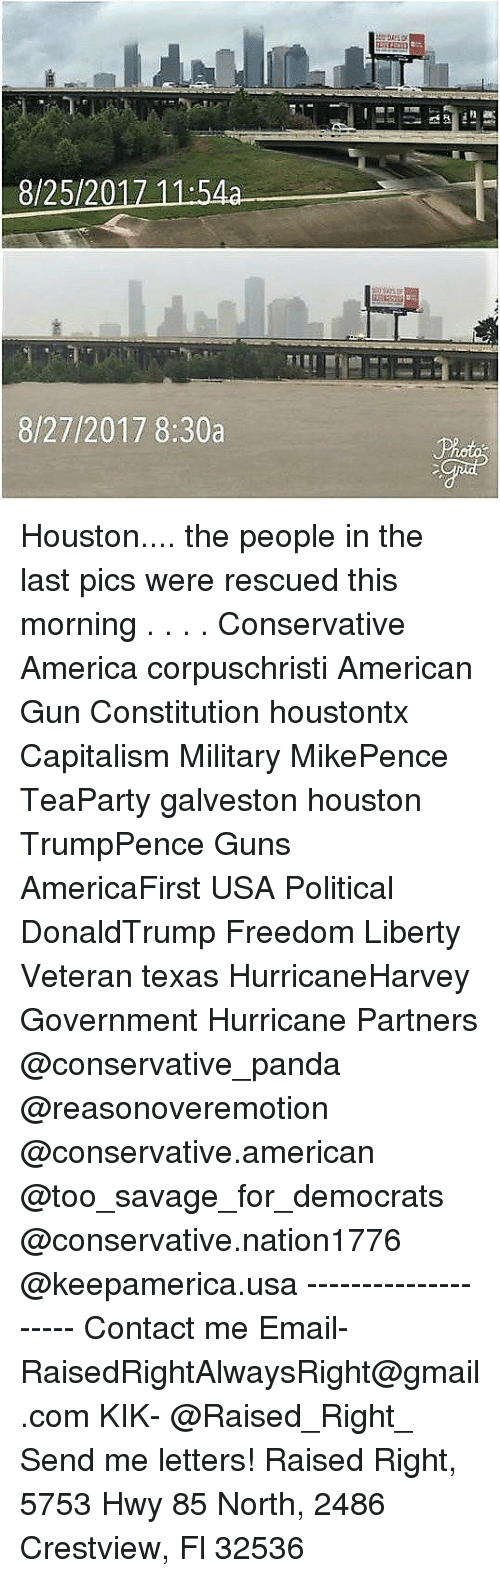 America, Guns, and Memes: 8/25/20  8/27/2017 8:30a Houston.... the people in the last pics were rescued this morning . . . . Conservative America corpuschristi American Gun Constitution houstontx Capitalism Military MikePence TeaParty galveston houston TrumpPence Guns AmericaFirst USA Political DonaldTrump Freedom Liberty Veteran texas HurricaneHarvey Government Hurricane Partners @conservative_panda @reasonoveremotion @conservative.american @too_savage_for_democrats @conservative.nation1776 @keepamerica.usa -------------------- Contact me ●Email- RaisedRightAlwaysRight@gmail.com ●KIK- @Raised_Right_ ●Send me letters! Raised Right, 5753 Hwy 85 North, 2486 Crestview, Fl 32536